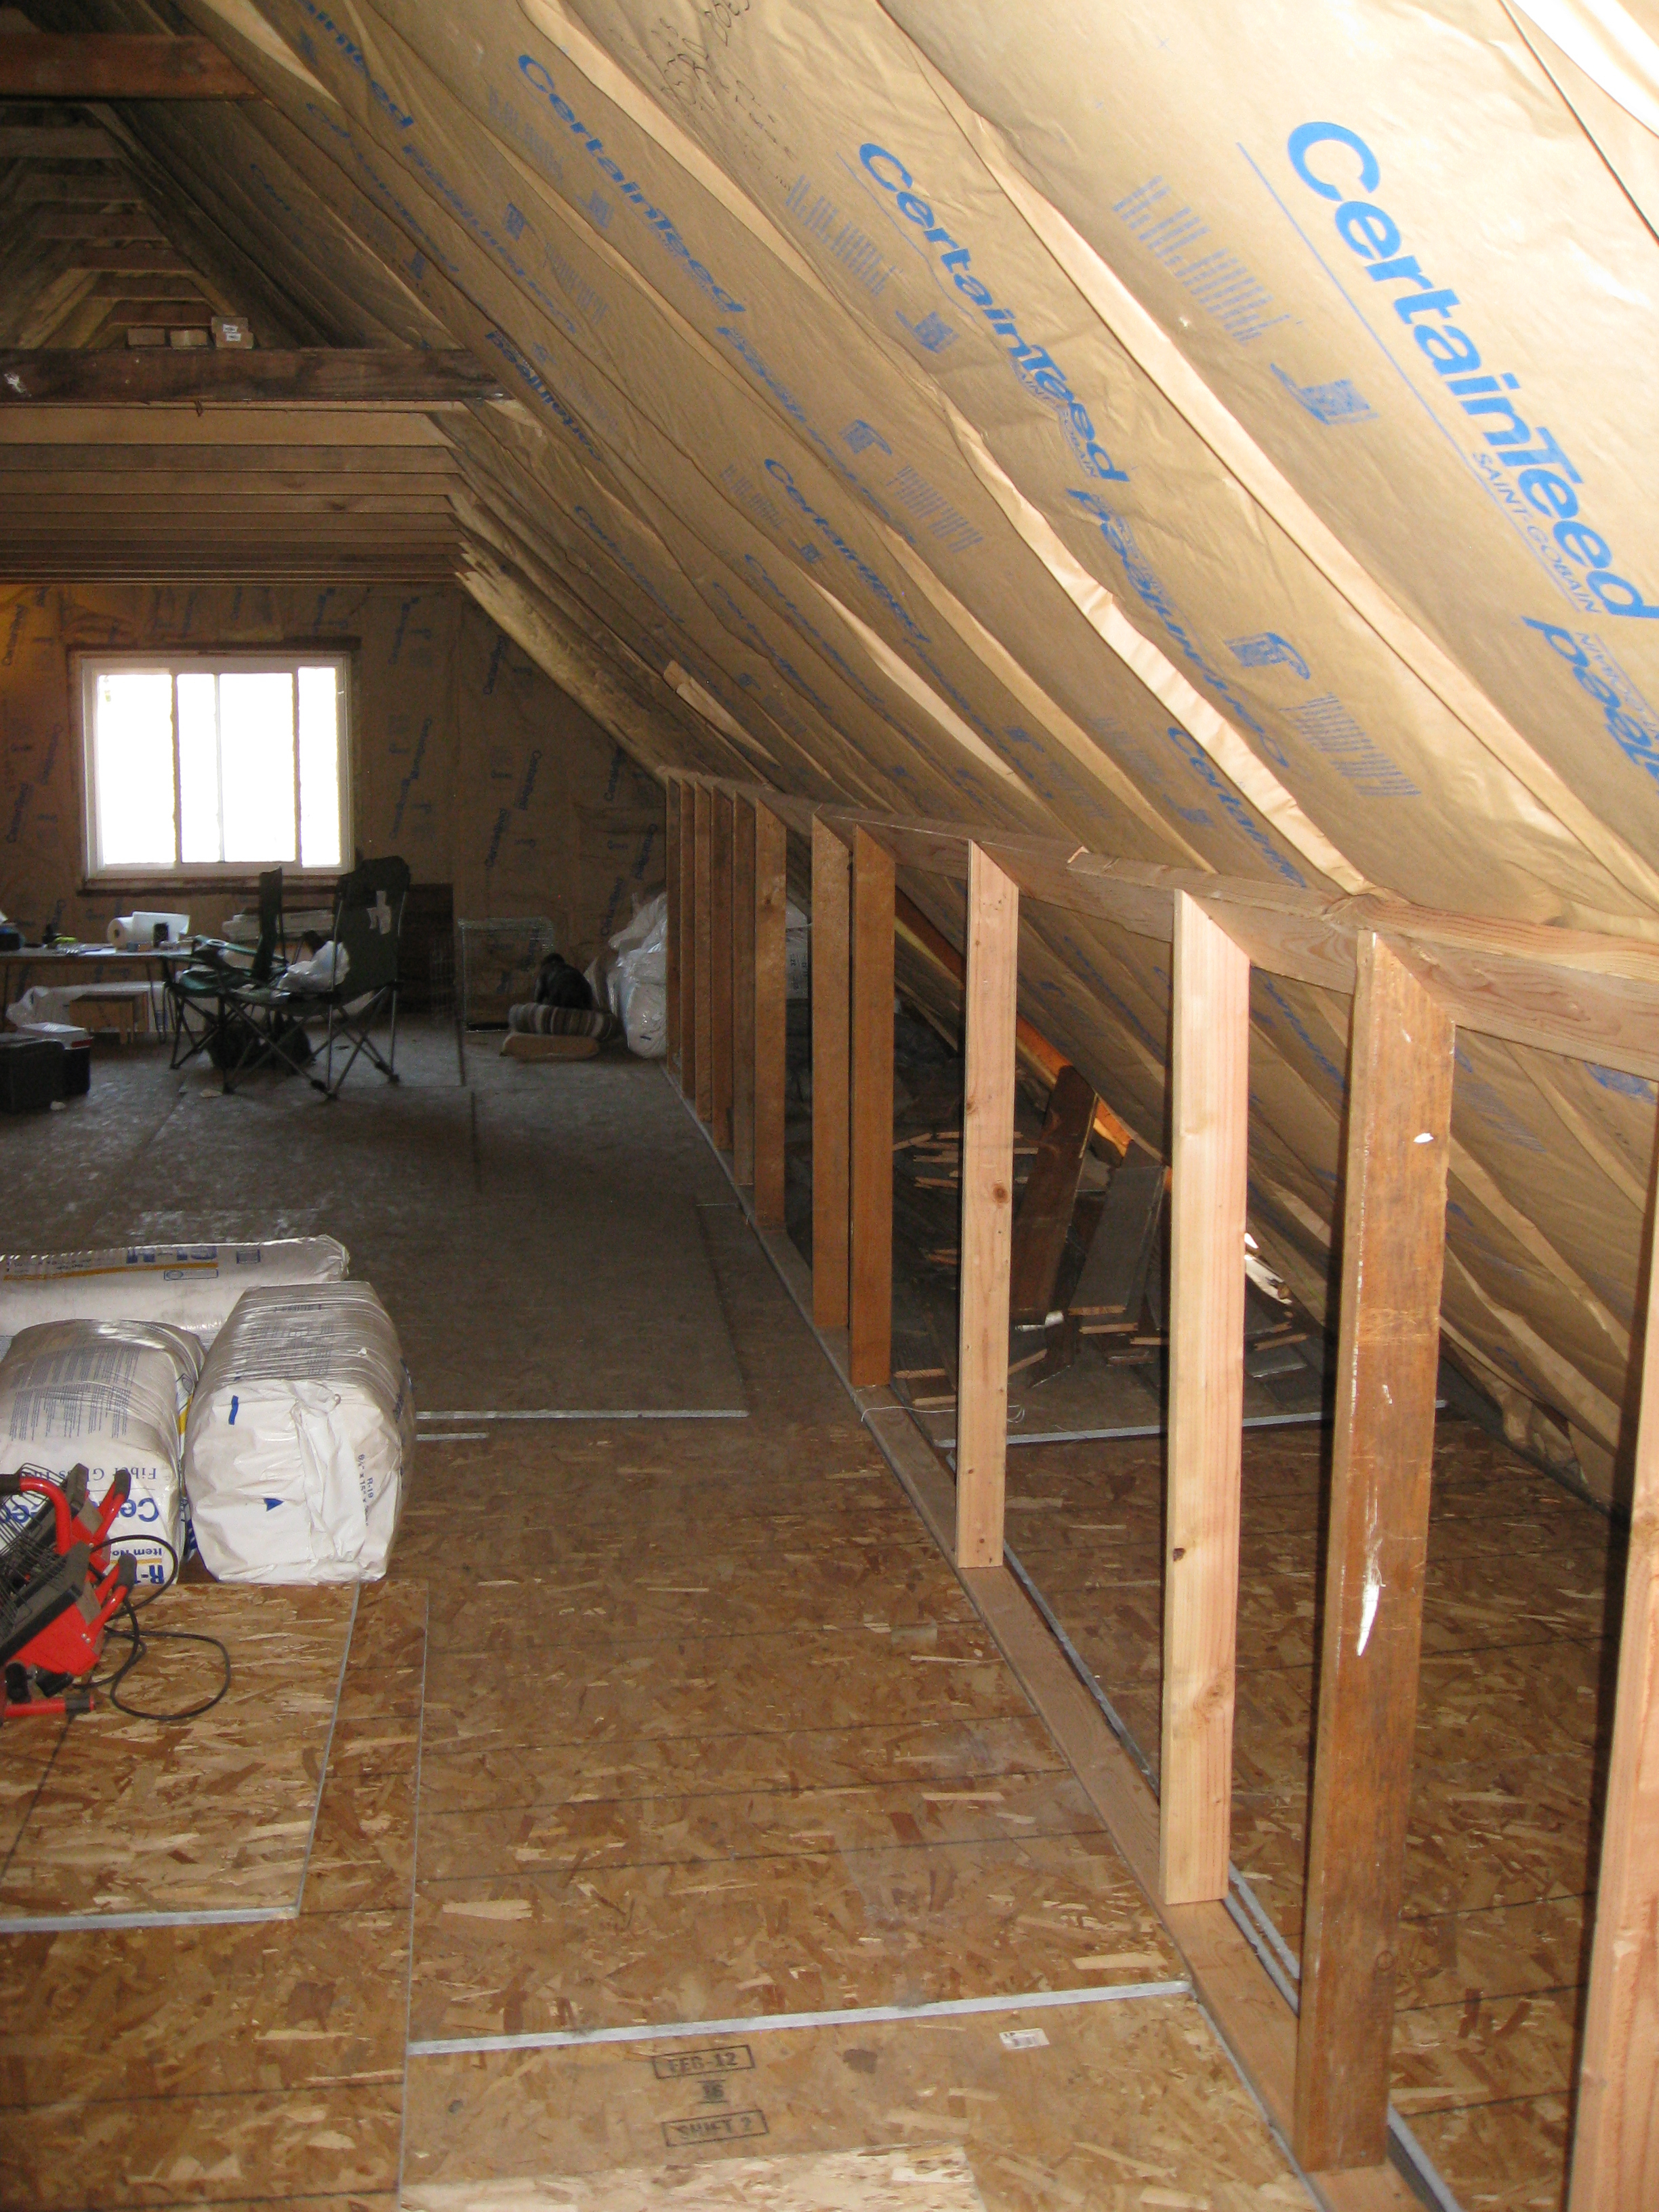 Best insulation for attic bedroom attic ideas An attic room